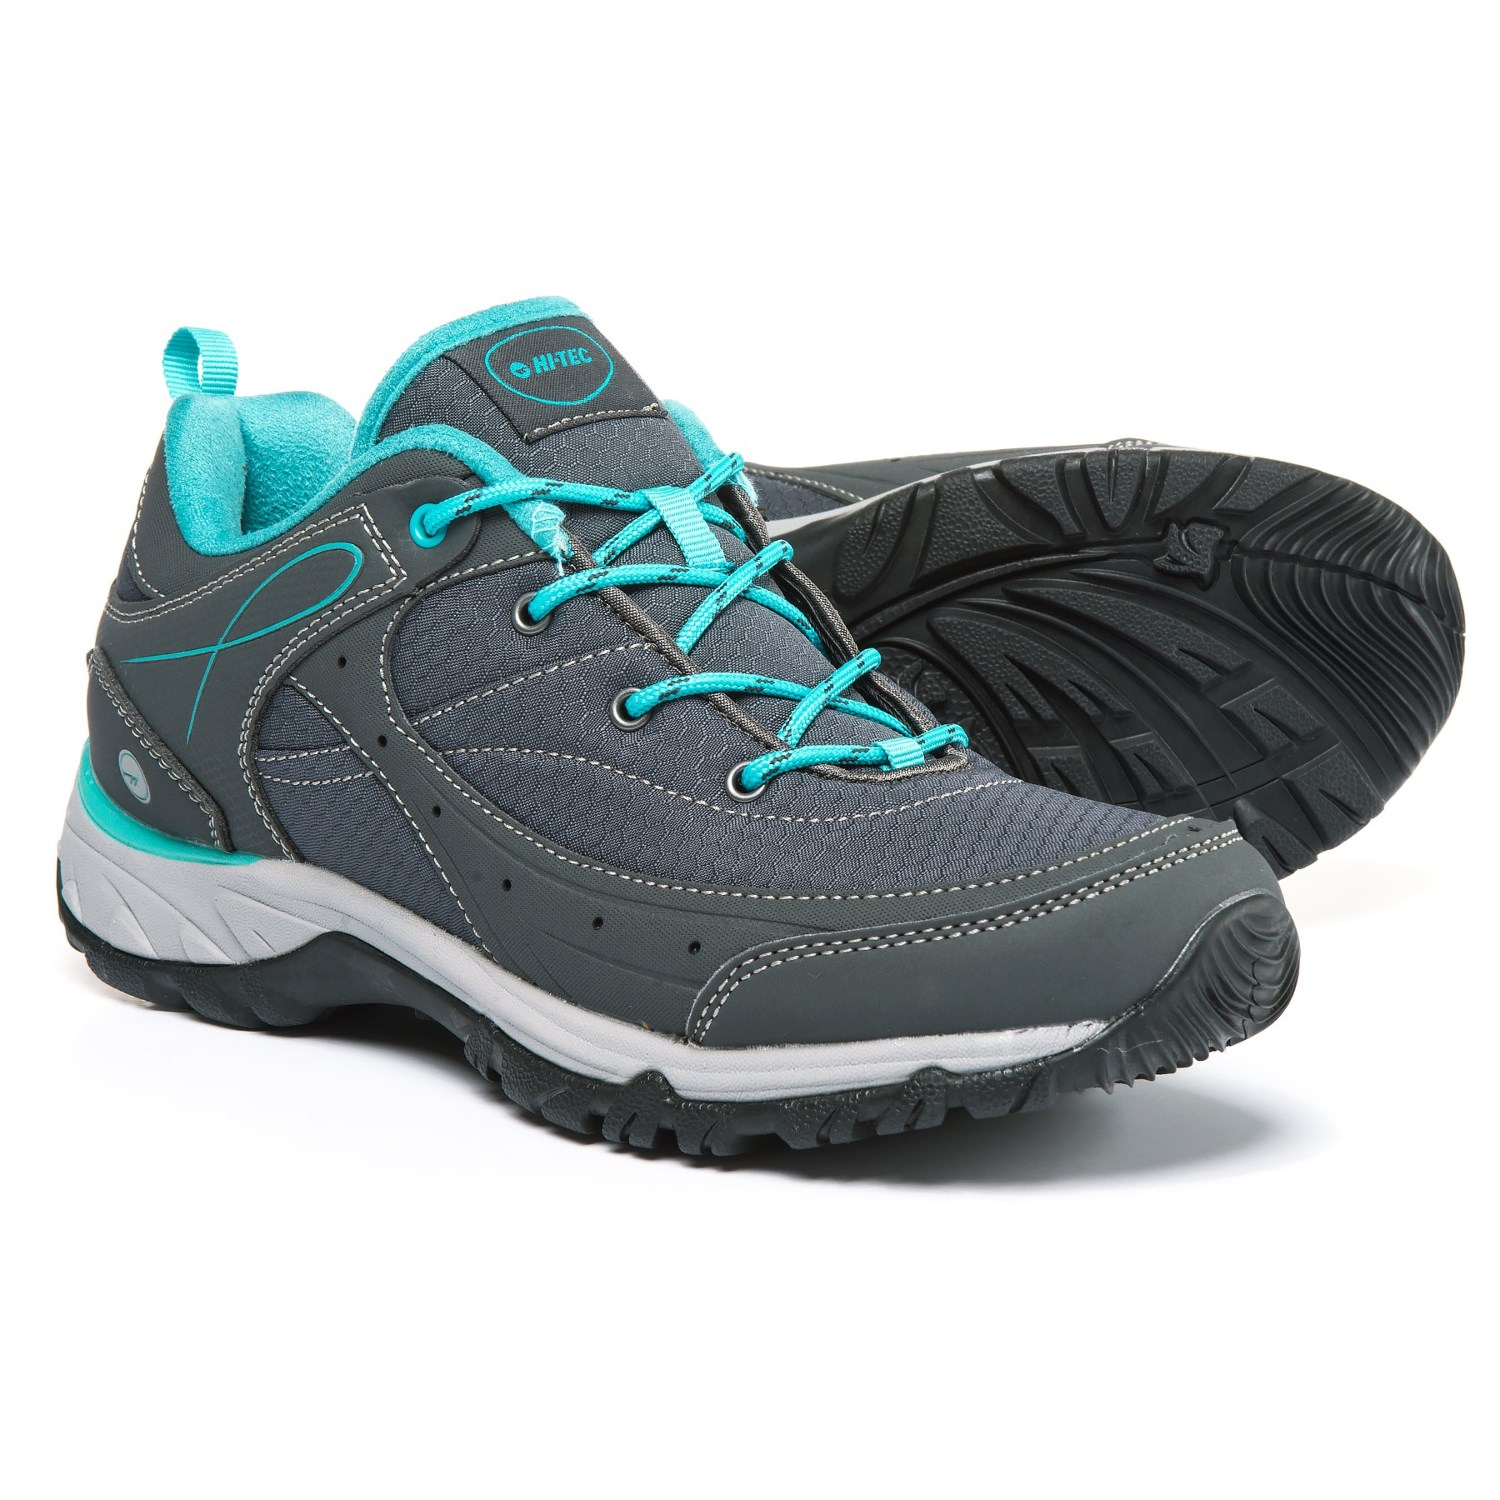 72f43007bfe Hi-Tec Equilibrio Bijou Low Hiking Shoes (For Women)